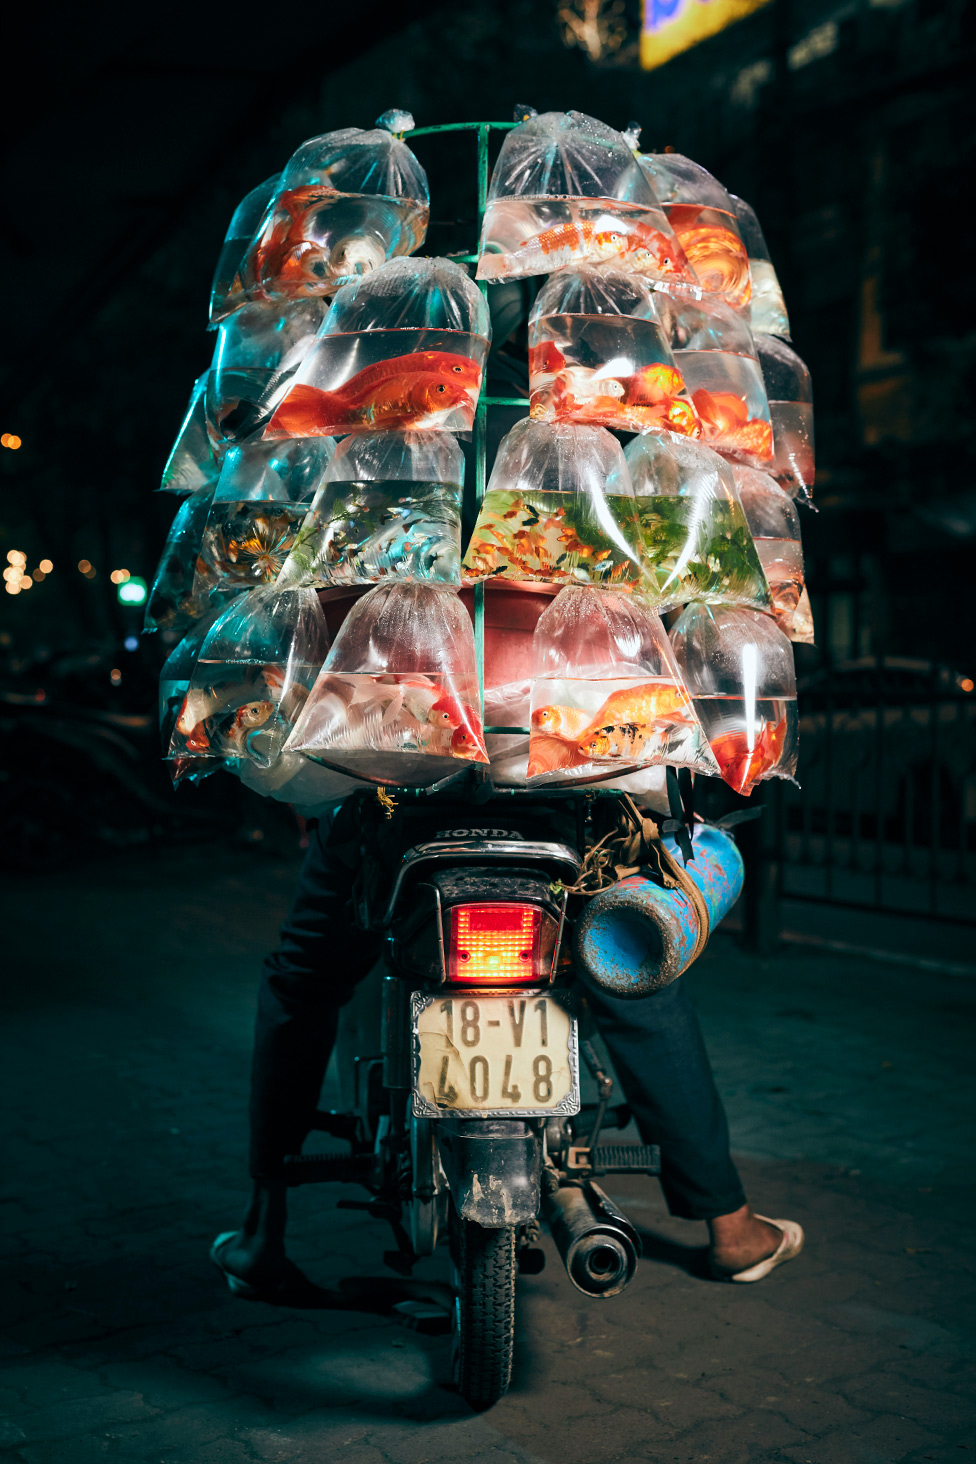 A motorcycle is mounted with a shelf- like structure, hanging bags of different types of fish